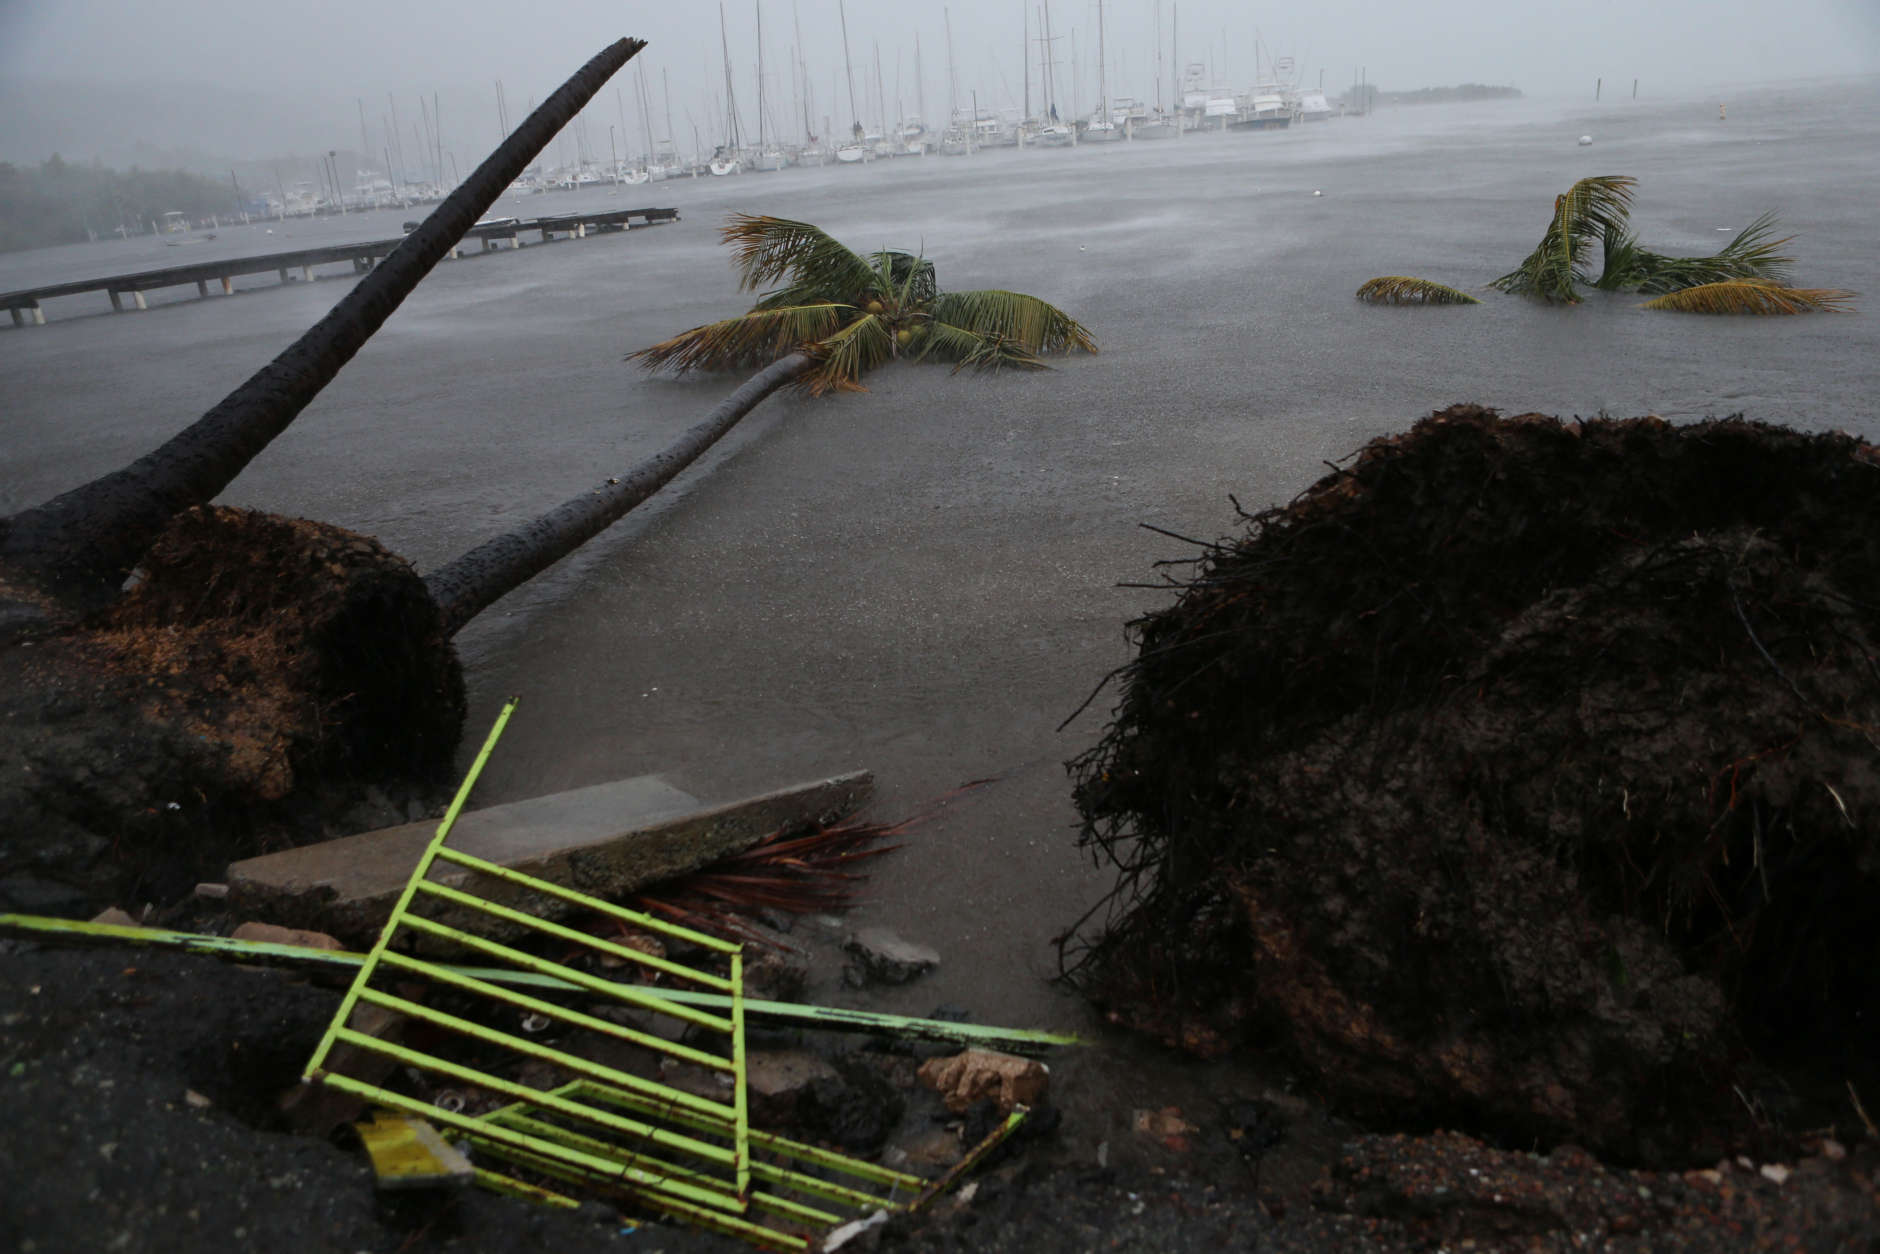 FAJARDO, PUERTO RICO - SEPTEMBER 06: Debris is seen during a storm surge near the Puerto Chico Harbor during the passing of Hurricane Irma on September 6, 2017 in Fajardo, Puerto Rico. The category 5 storm is expected to pass over Puerto Rico and the Virgin Islands today, and make landfall in Florida by the weekend. (Photo by Jose Jimenez/Getty Images)